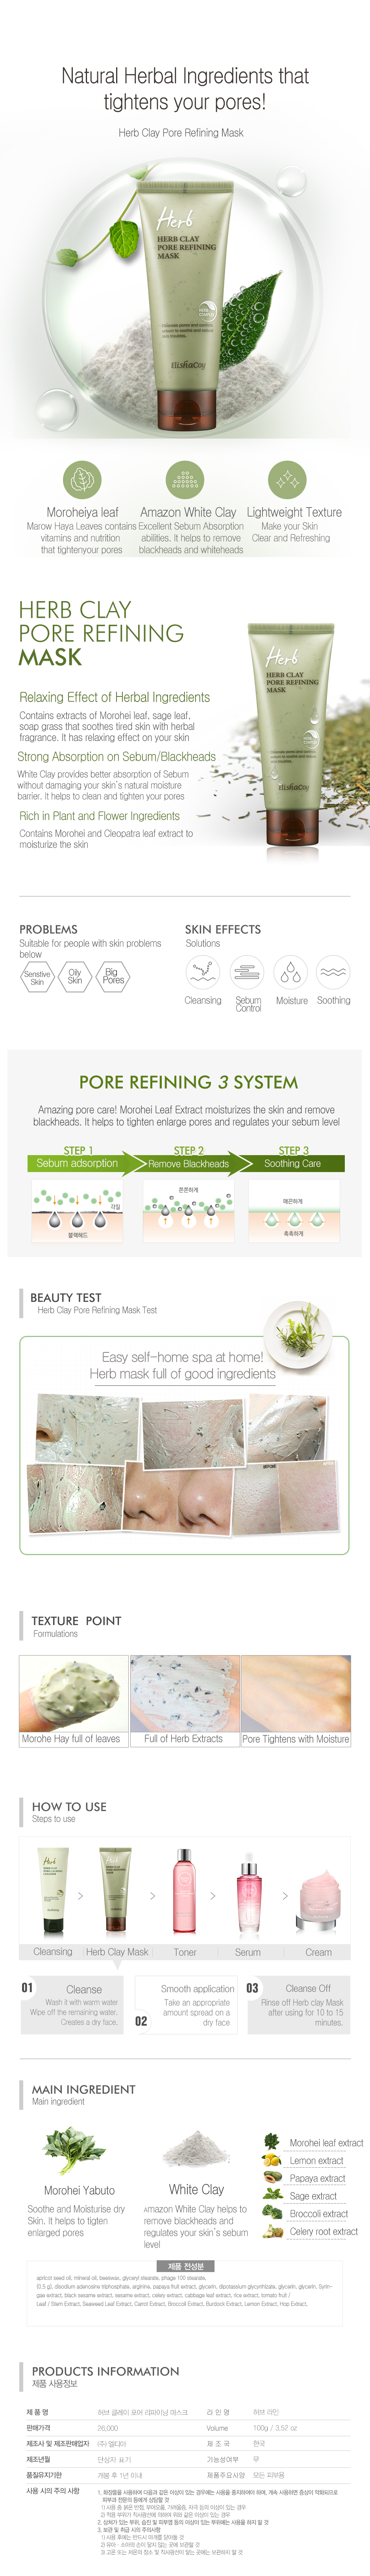 Herb Clay Pore Refining Mask